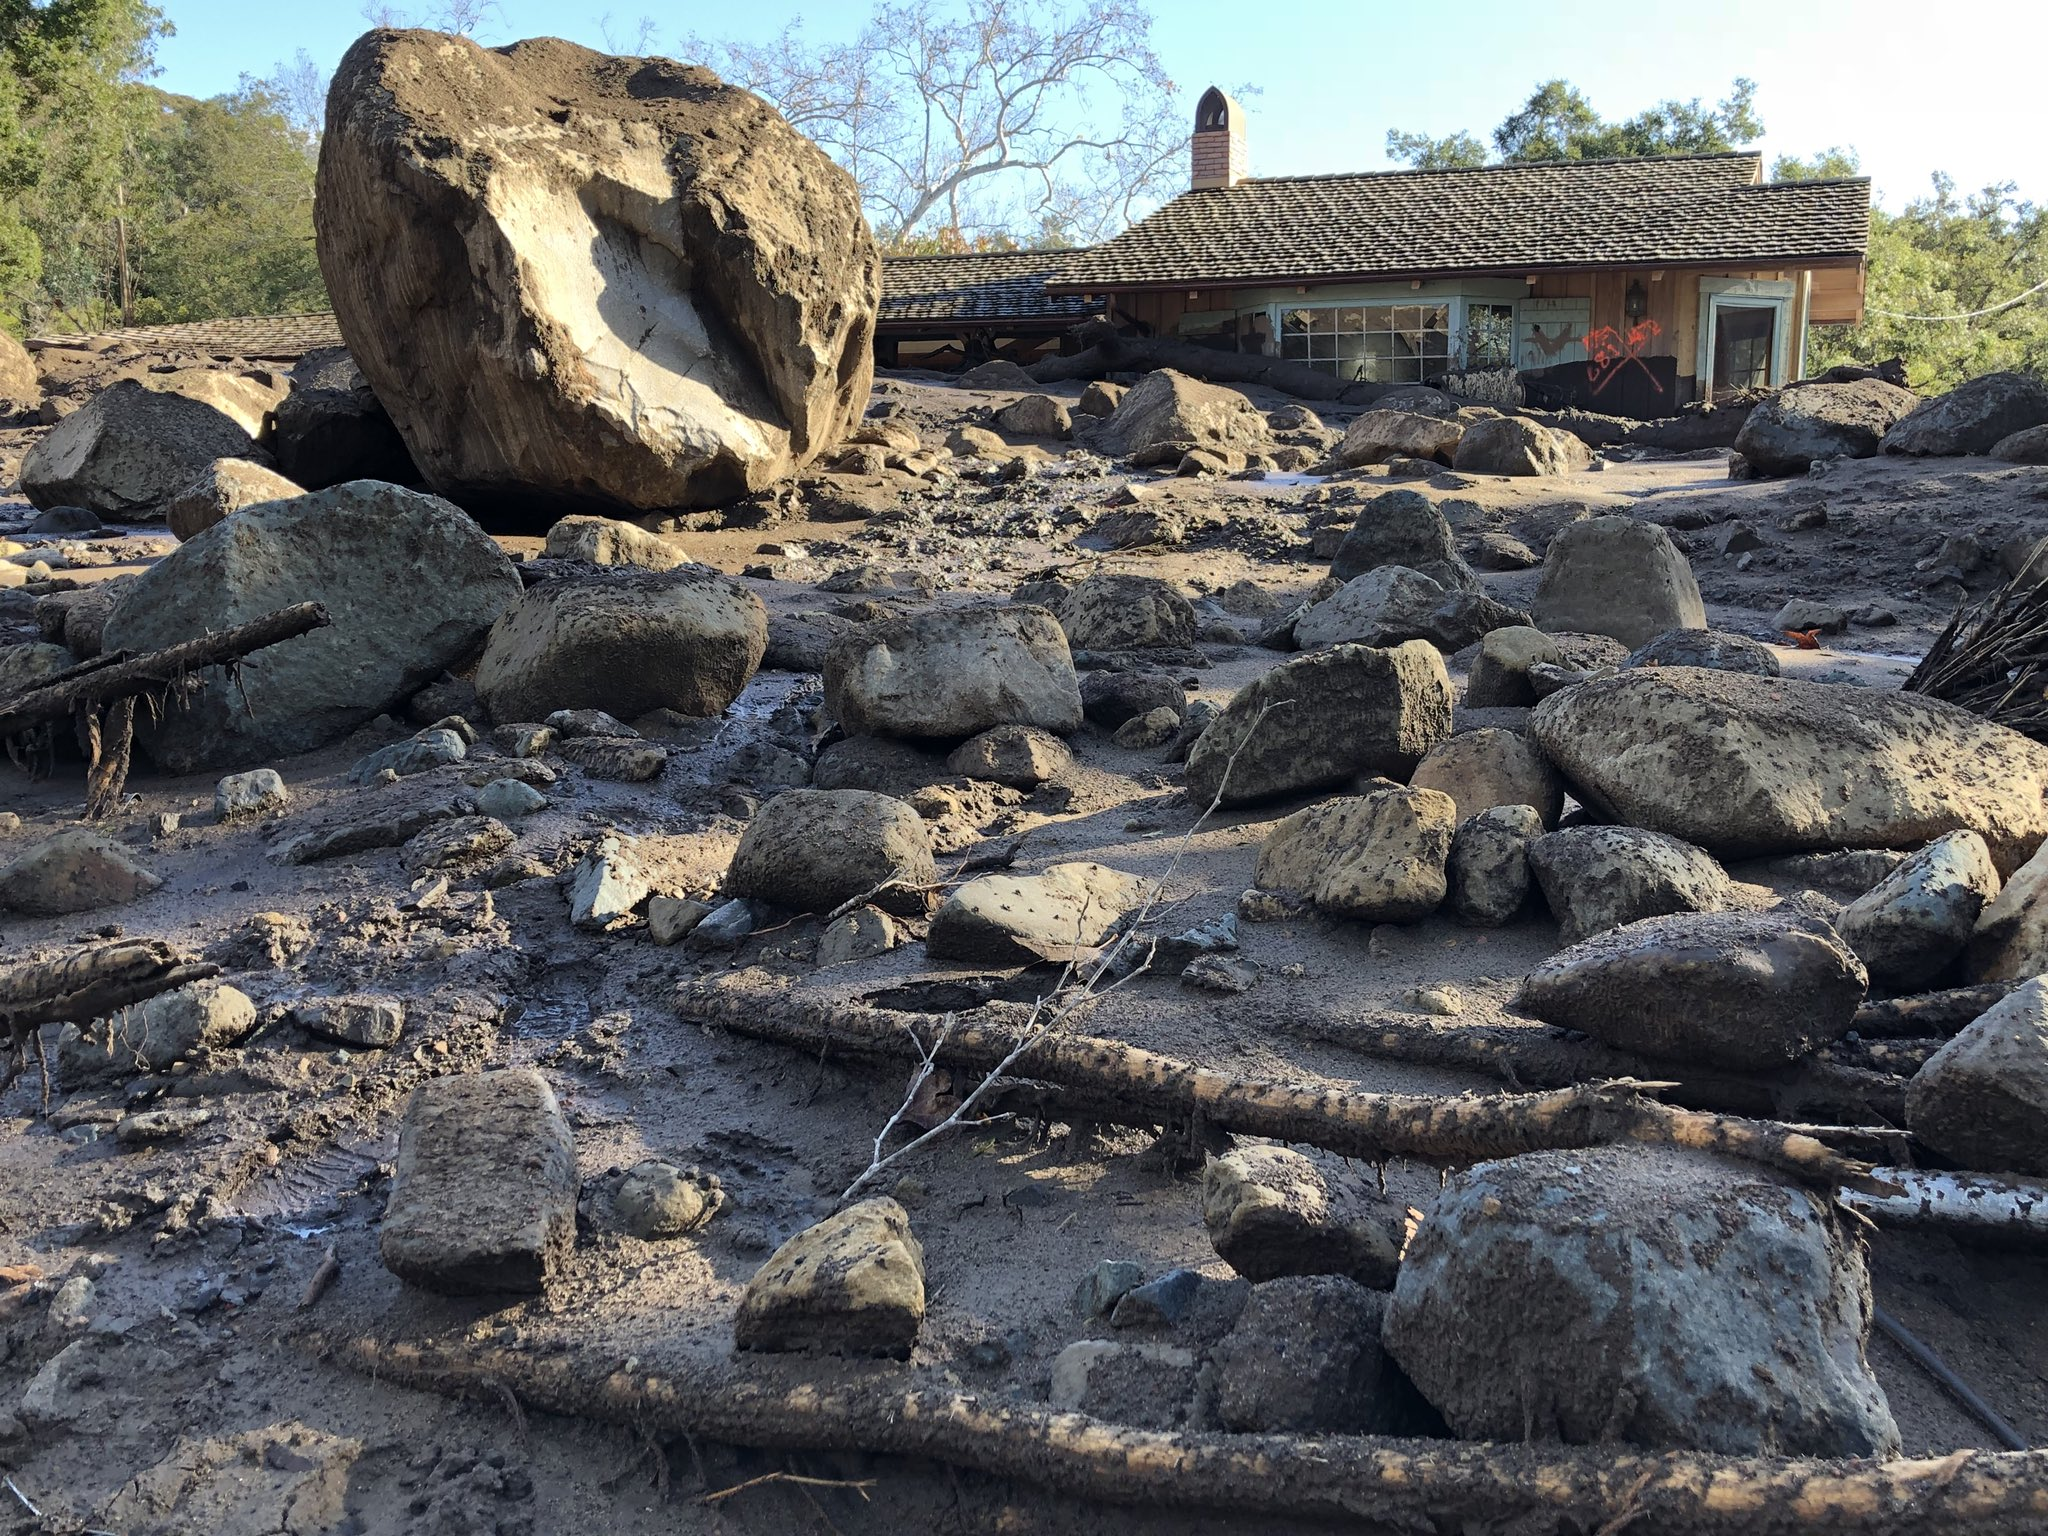 Destroyed homes dot the landscape along San Ysidro Creek near East Valley Road in Montecito. Runoff from heavy rain early Tuesday brought boulders, mudflow, and debris. (Photo & Caption: Mike Eliason, Santa Barbara County Fire Dept.)